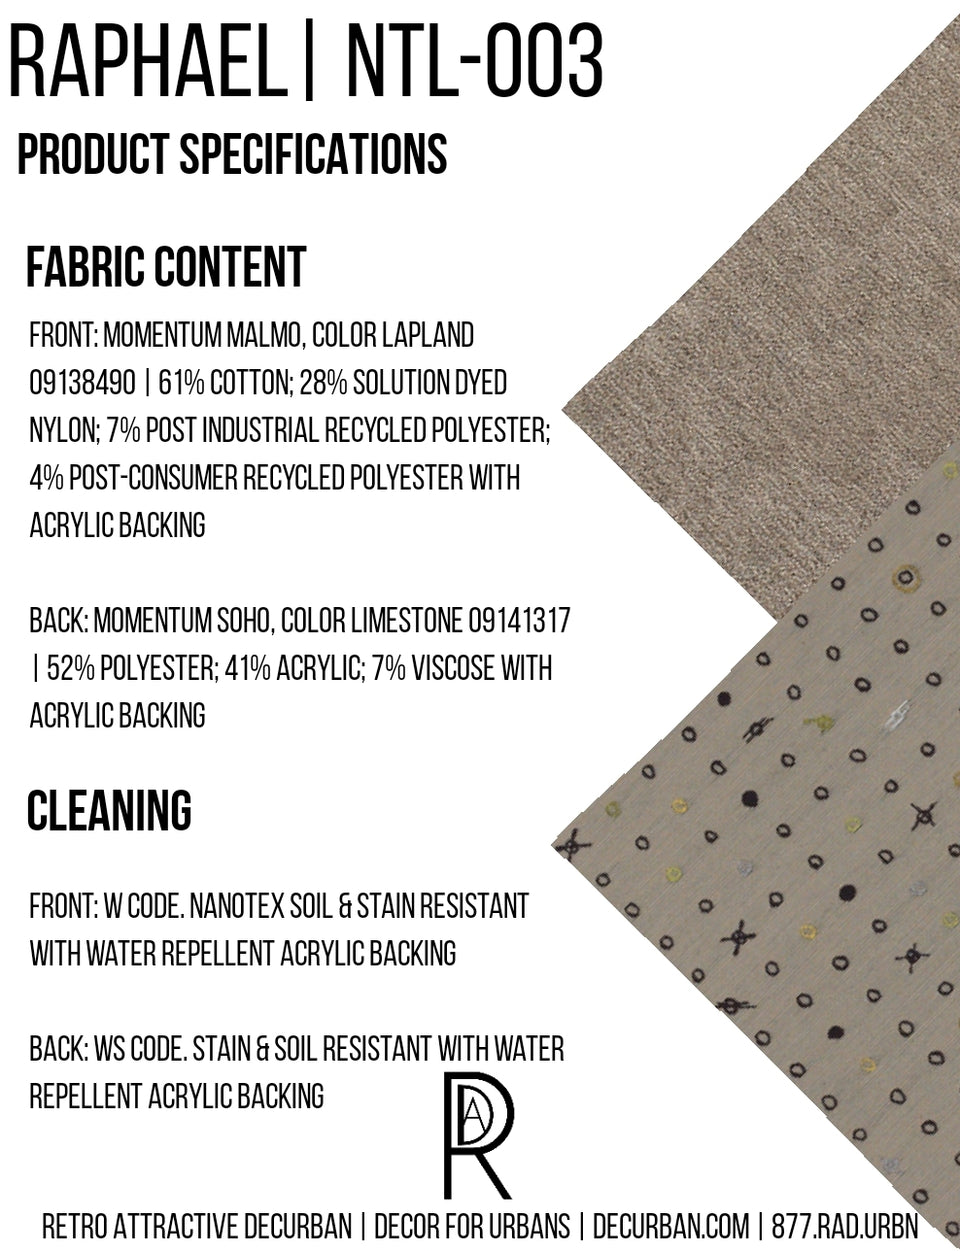 Decurban Raphael Fabric Specification Sheet